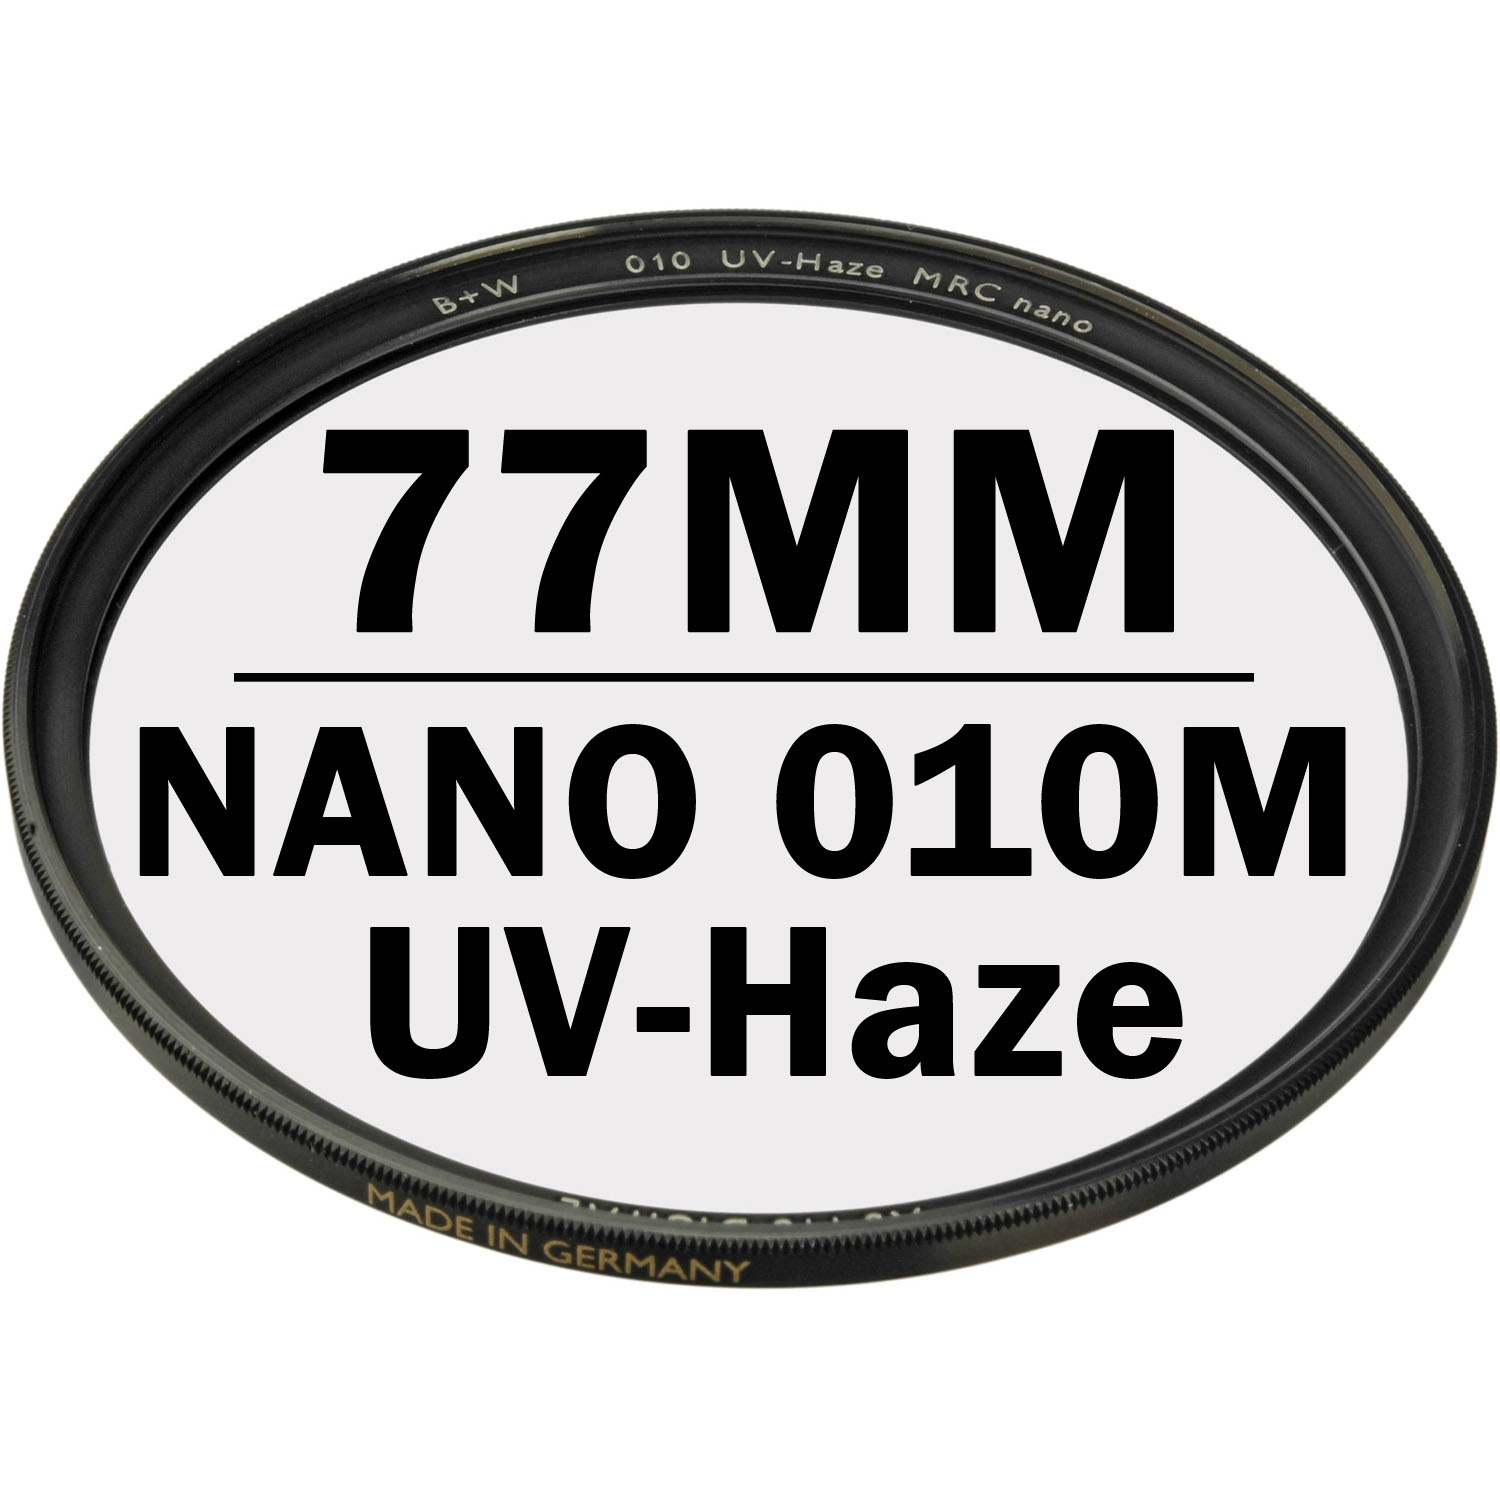 B+W 77 mm XS PRO UV Haze 010M MRC NANO Digital Filter